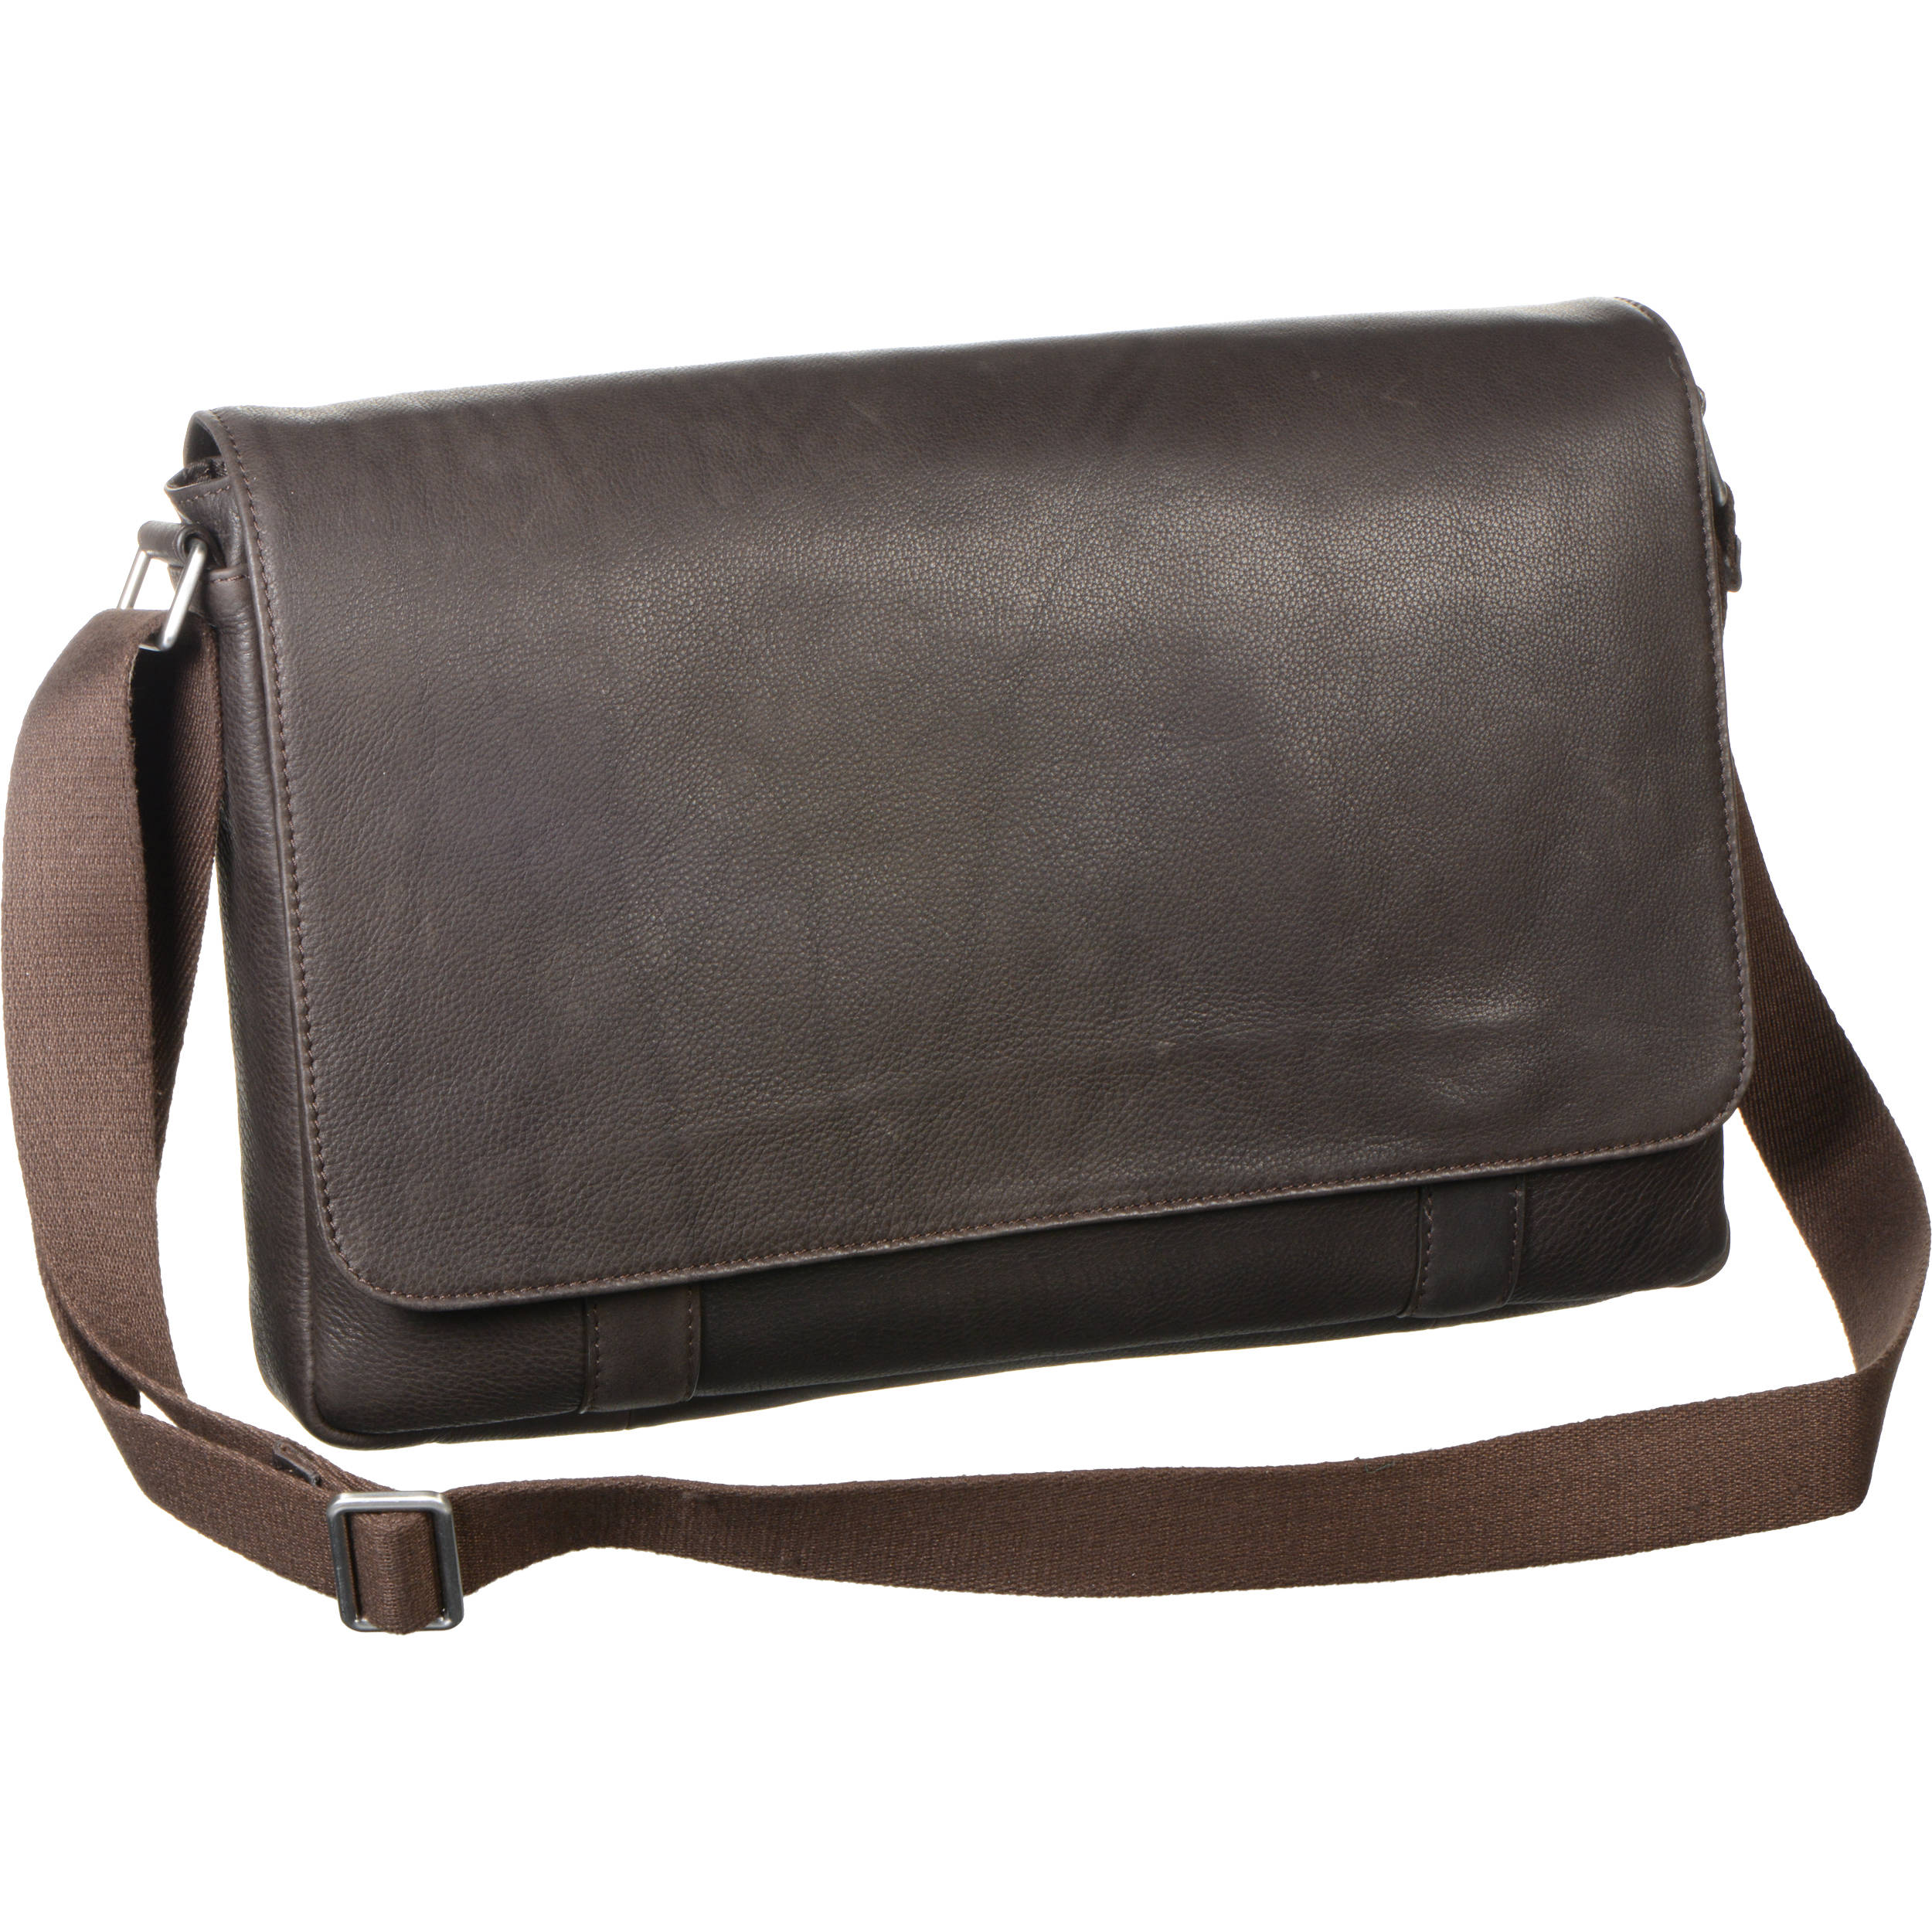 Savile Row Computer Messenger Bag For 15 Laptop Brown